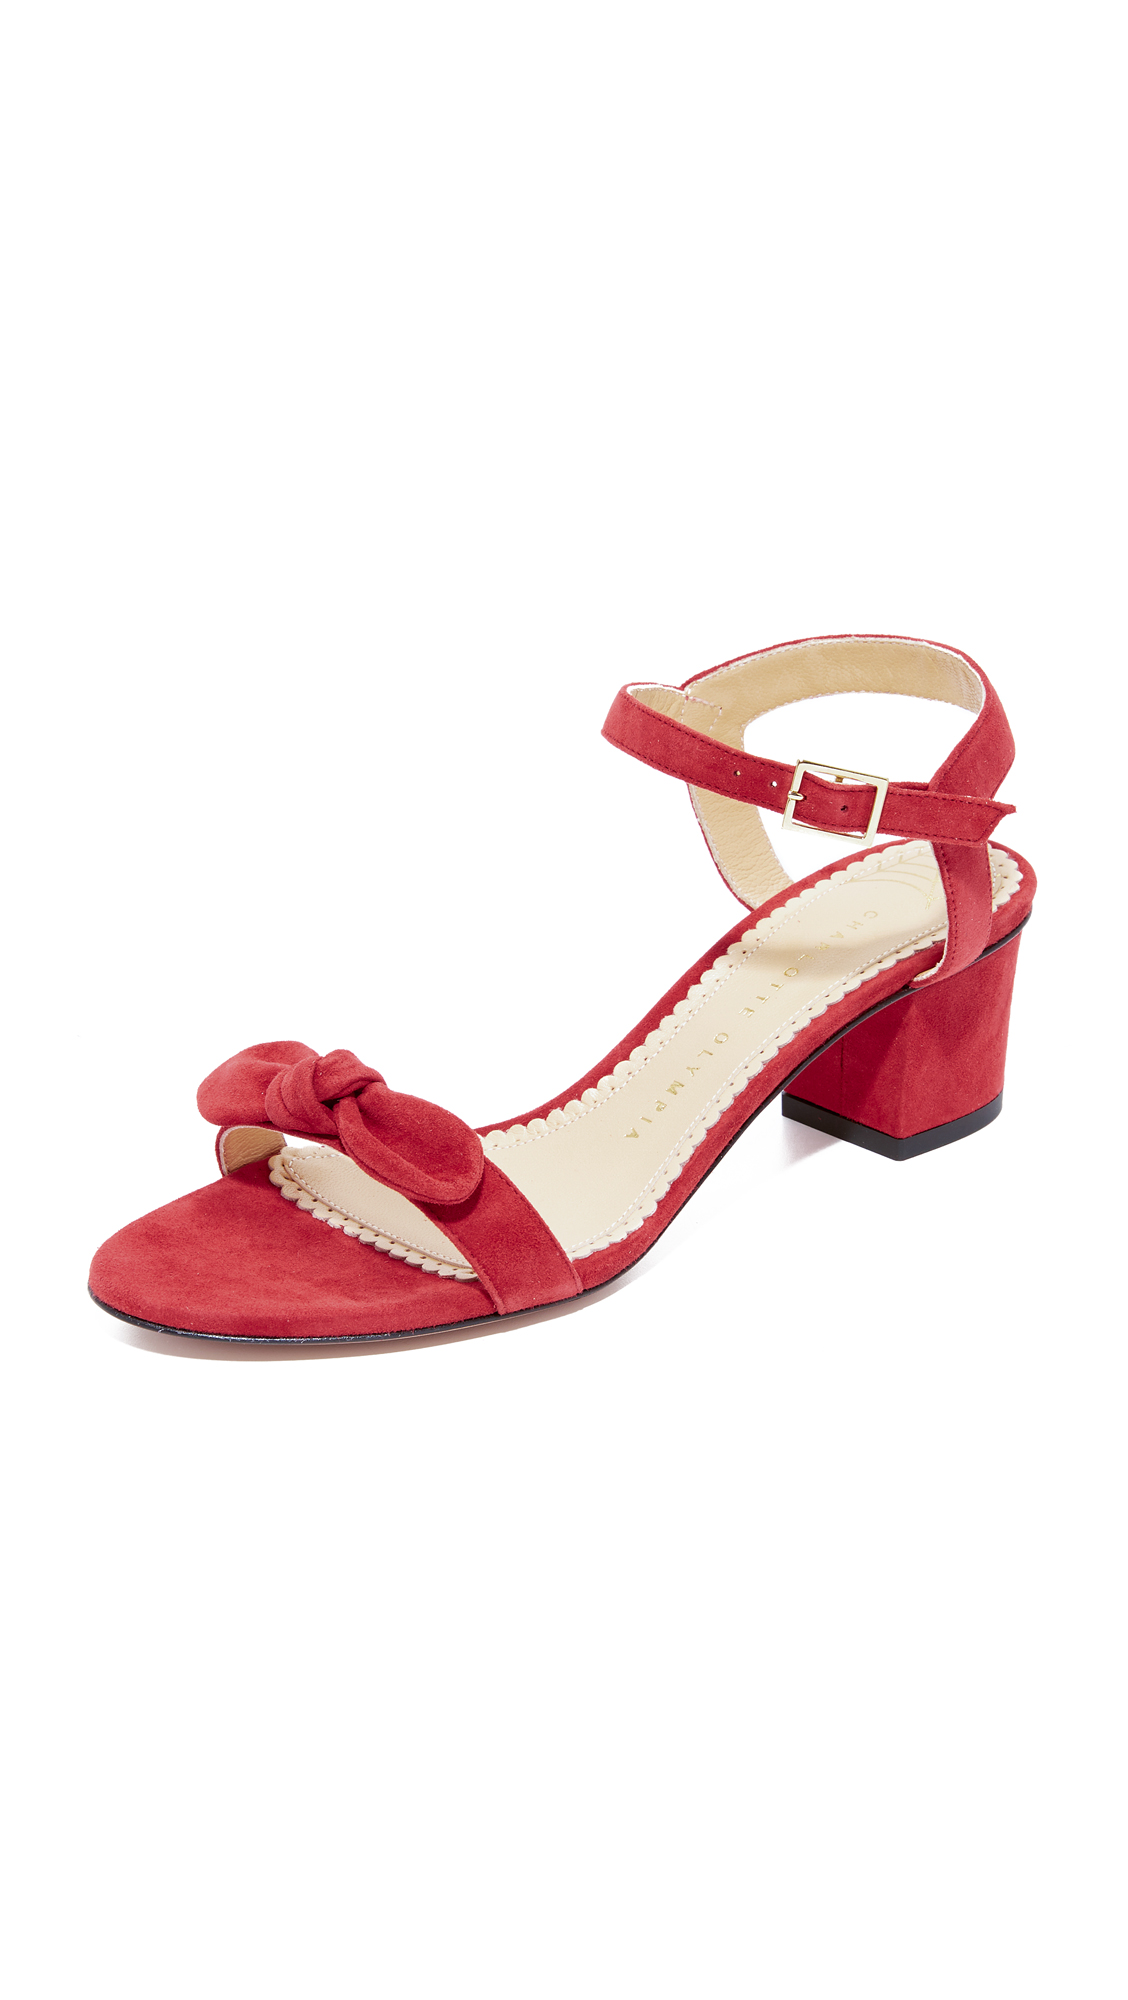 Charlotte Olympia Harley Sandals - Red